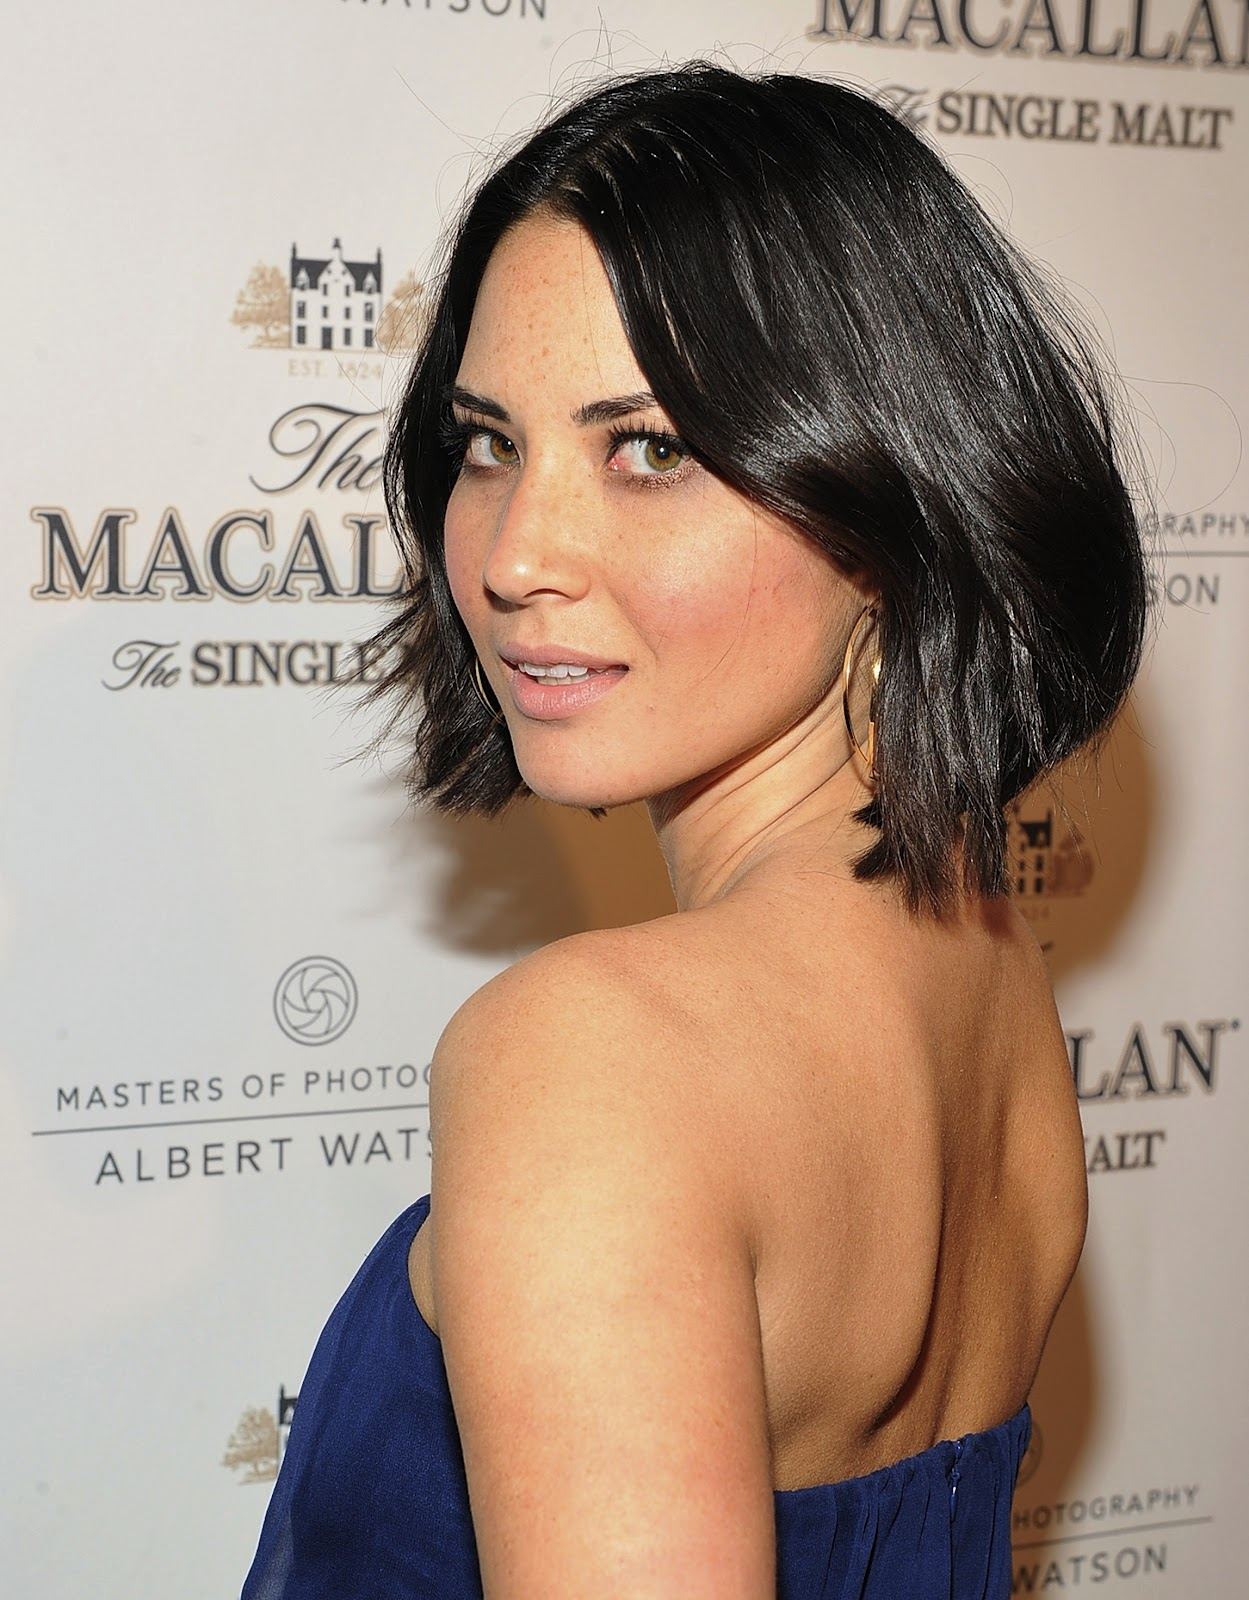 http://1.bp.blogspot.com/-v2ceLFG9qmc/T1TY0CELgZI/AAAAAAAAChs/DjgDCsY8NHk/s1600/Olivia-Munn-hairstyles-actress-model-pictures-photo%2B%2525282%252529.jpg